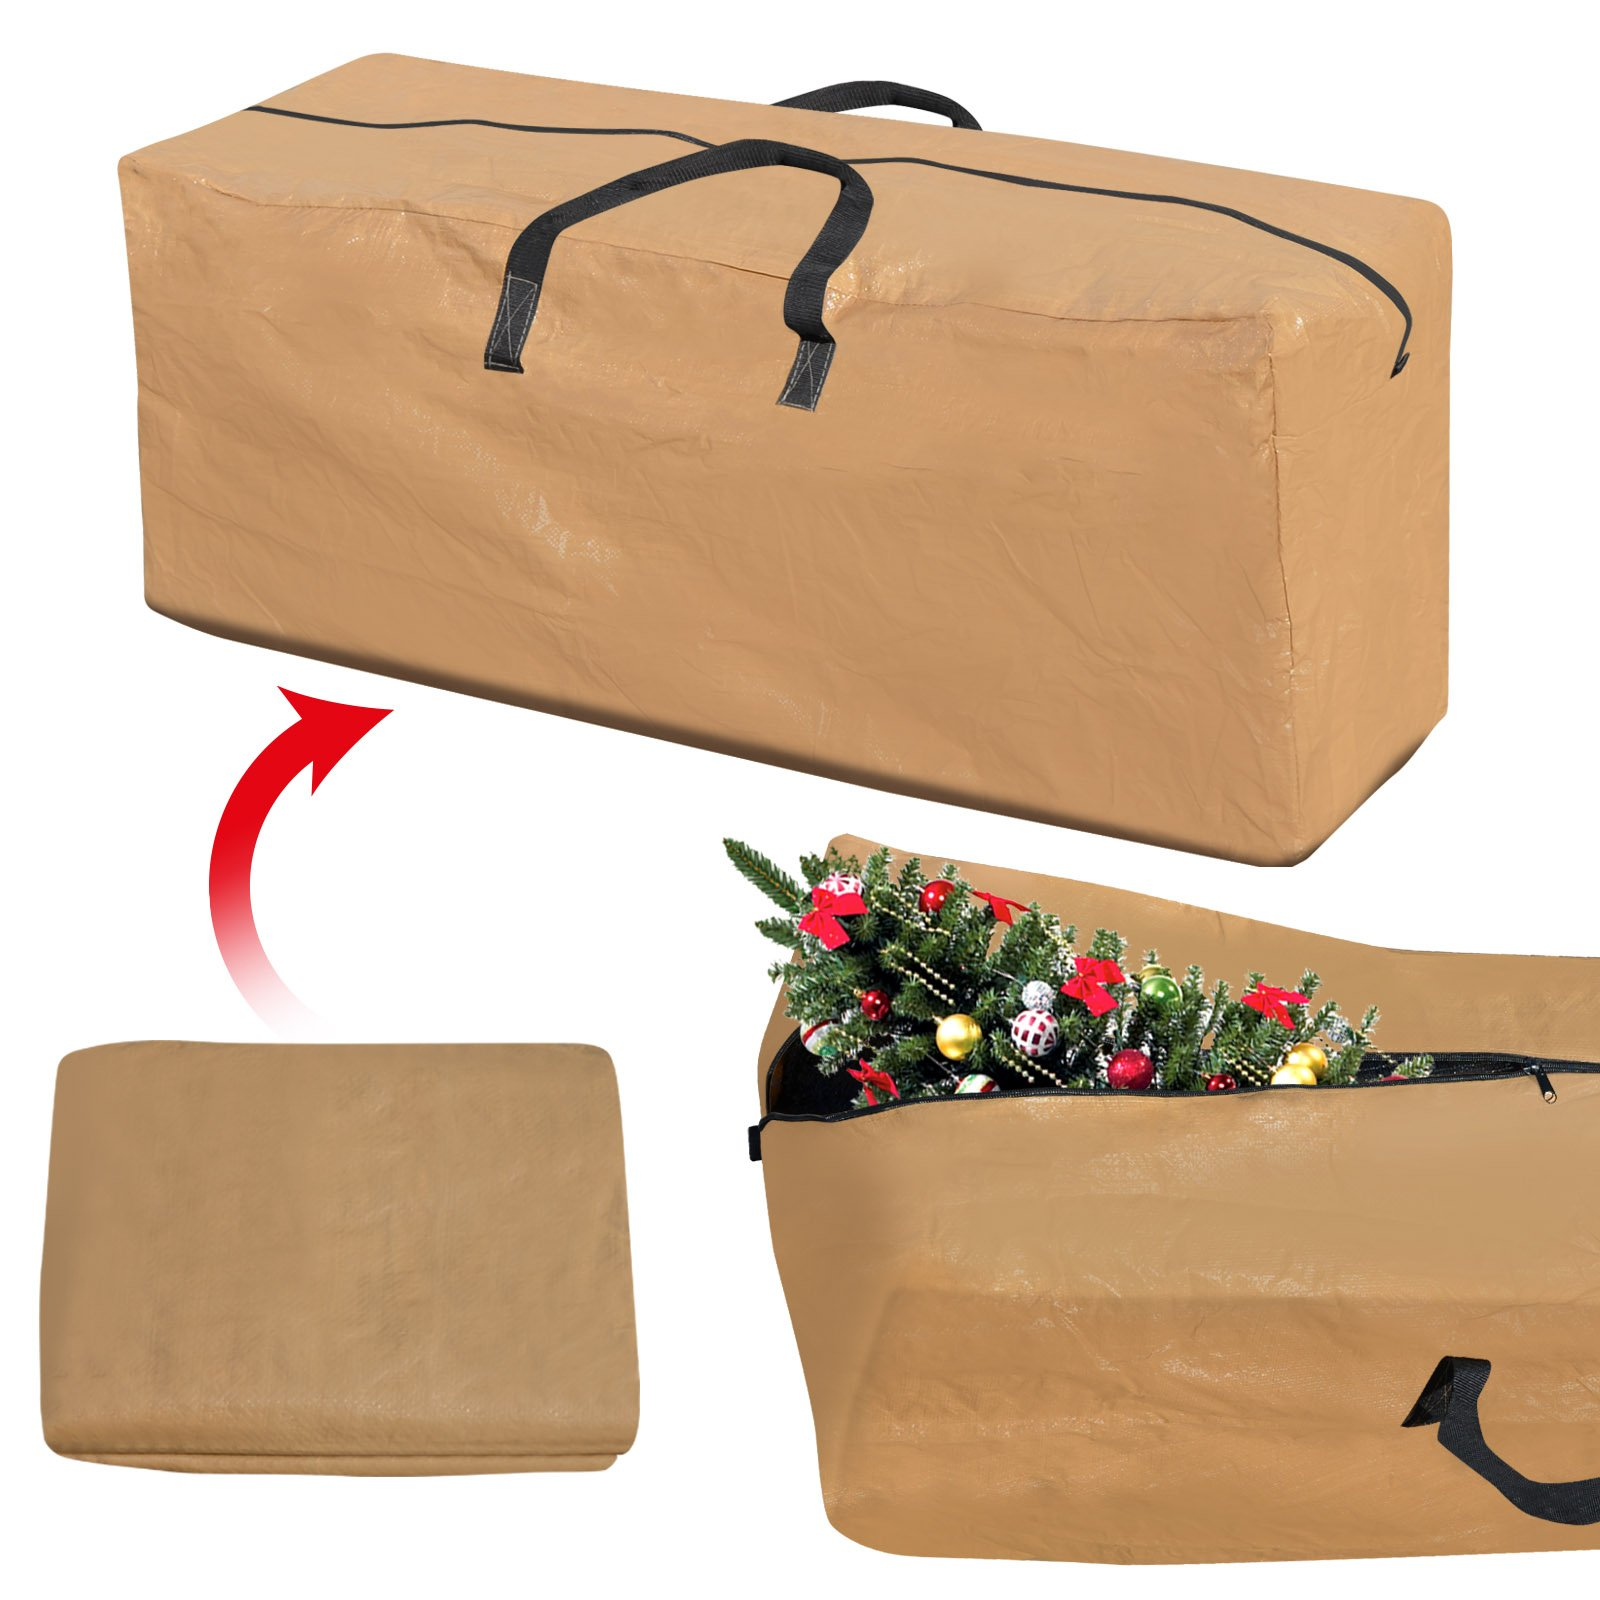 BenefitUSA Heavy Duty Large Artificial Christmas Tree Storage Bag For Clean Up Holiday Up to 8ft Tan Bag